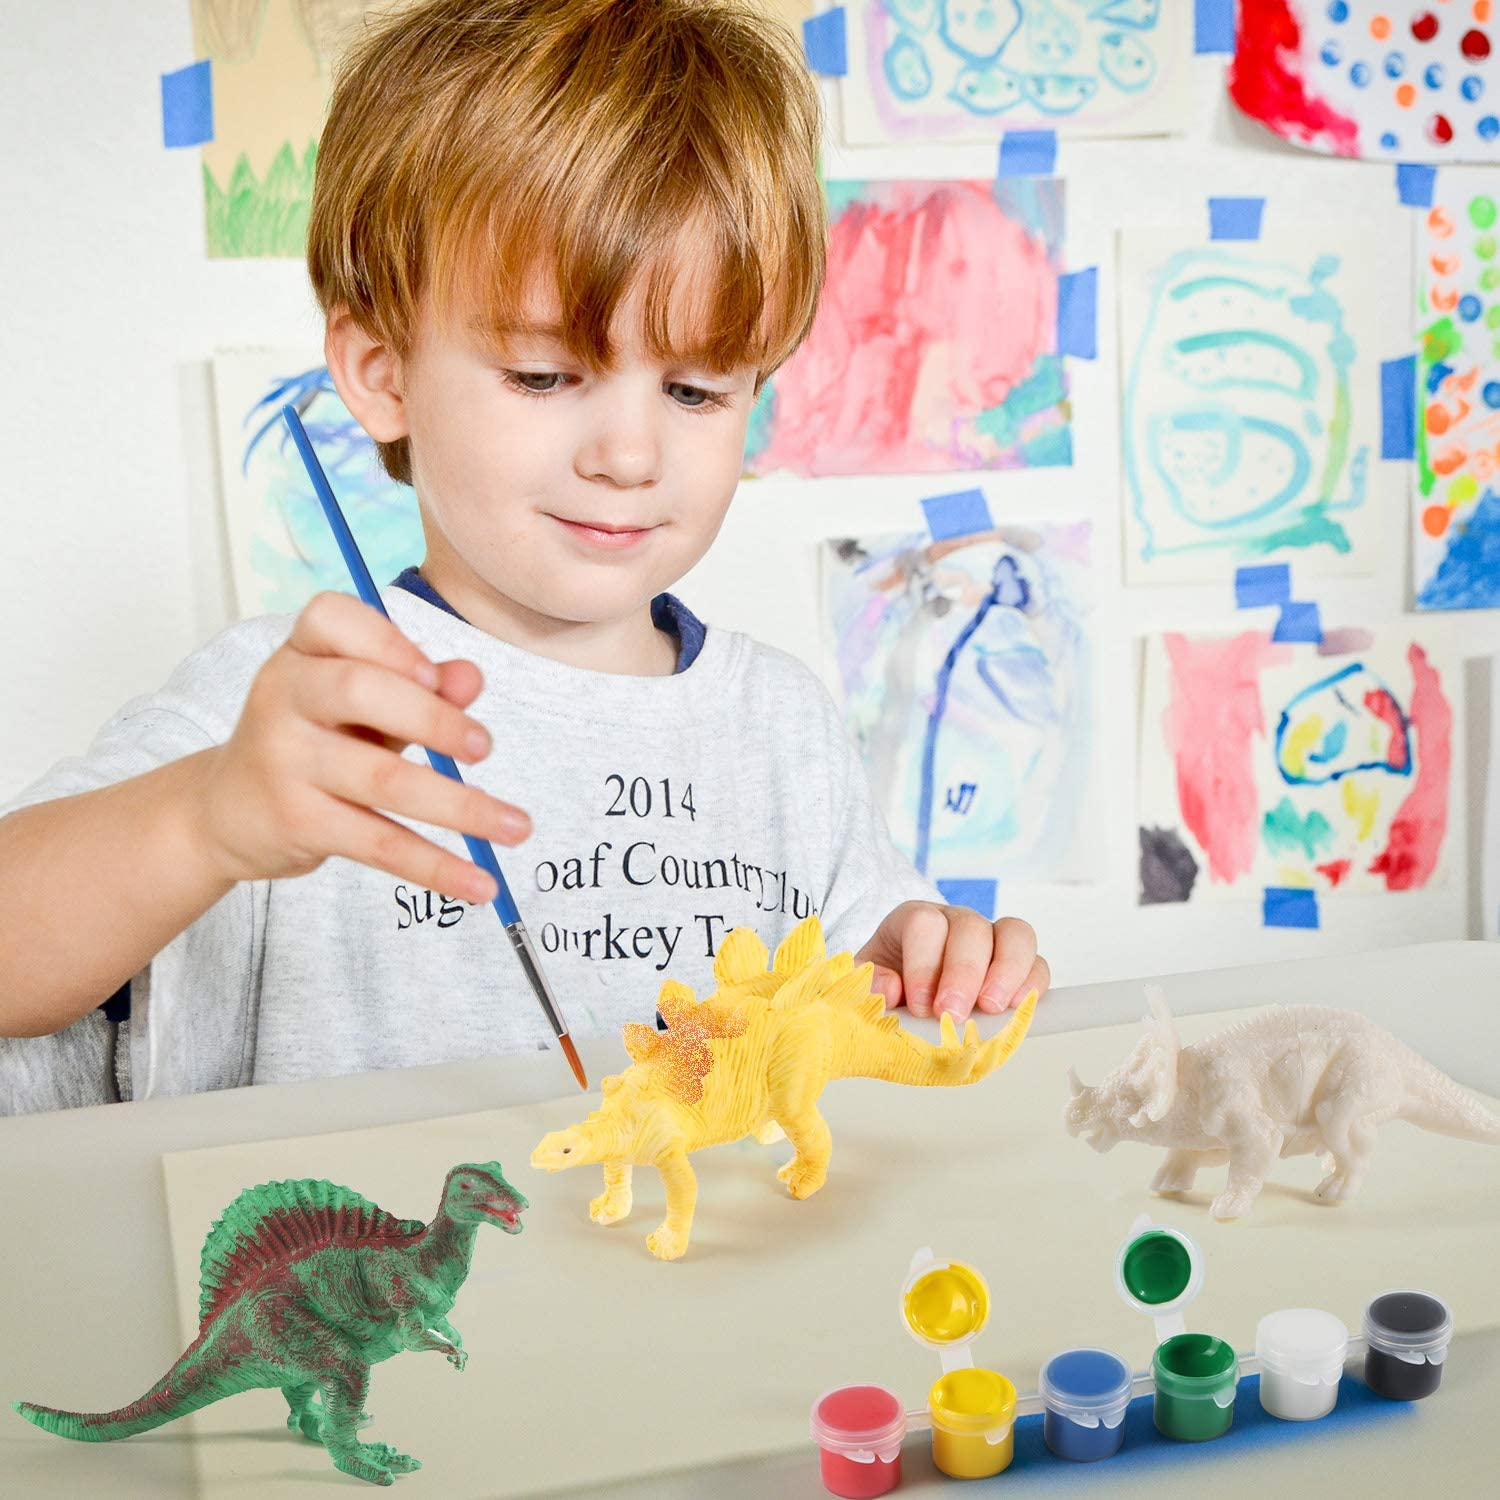 NEOWOWS Kids Crafts and Arts Supplies Set Painting Kit Decorate Your Own Dinosaur Figurines DIY Dinosaur Arts Crafts 3D Painting Dinosaurs Toys for Kids Boys Girls Age 4 5 6 7 8 Years Old